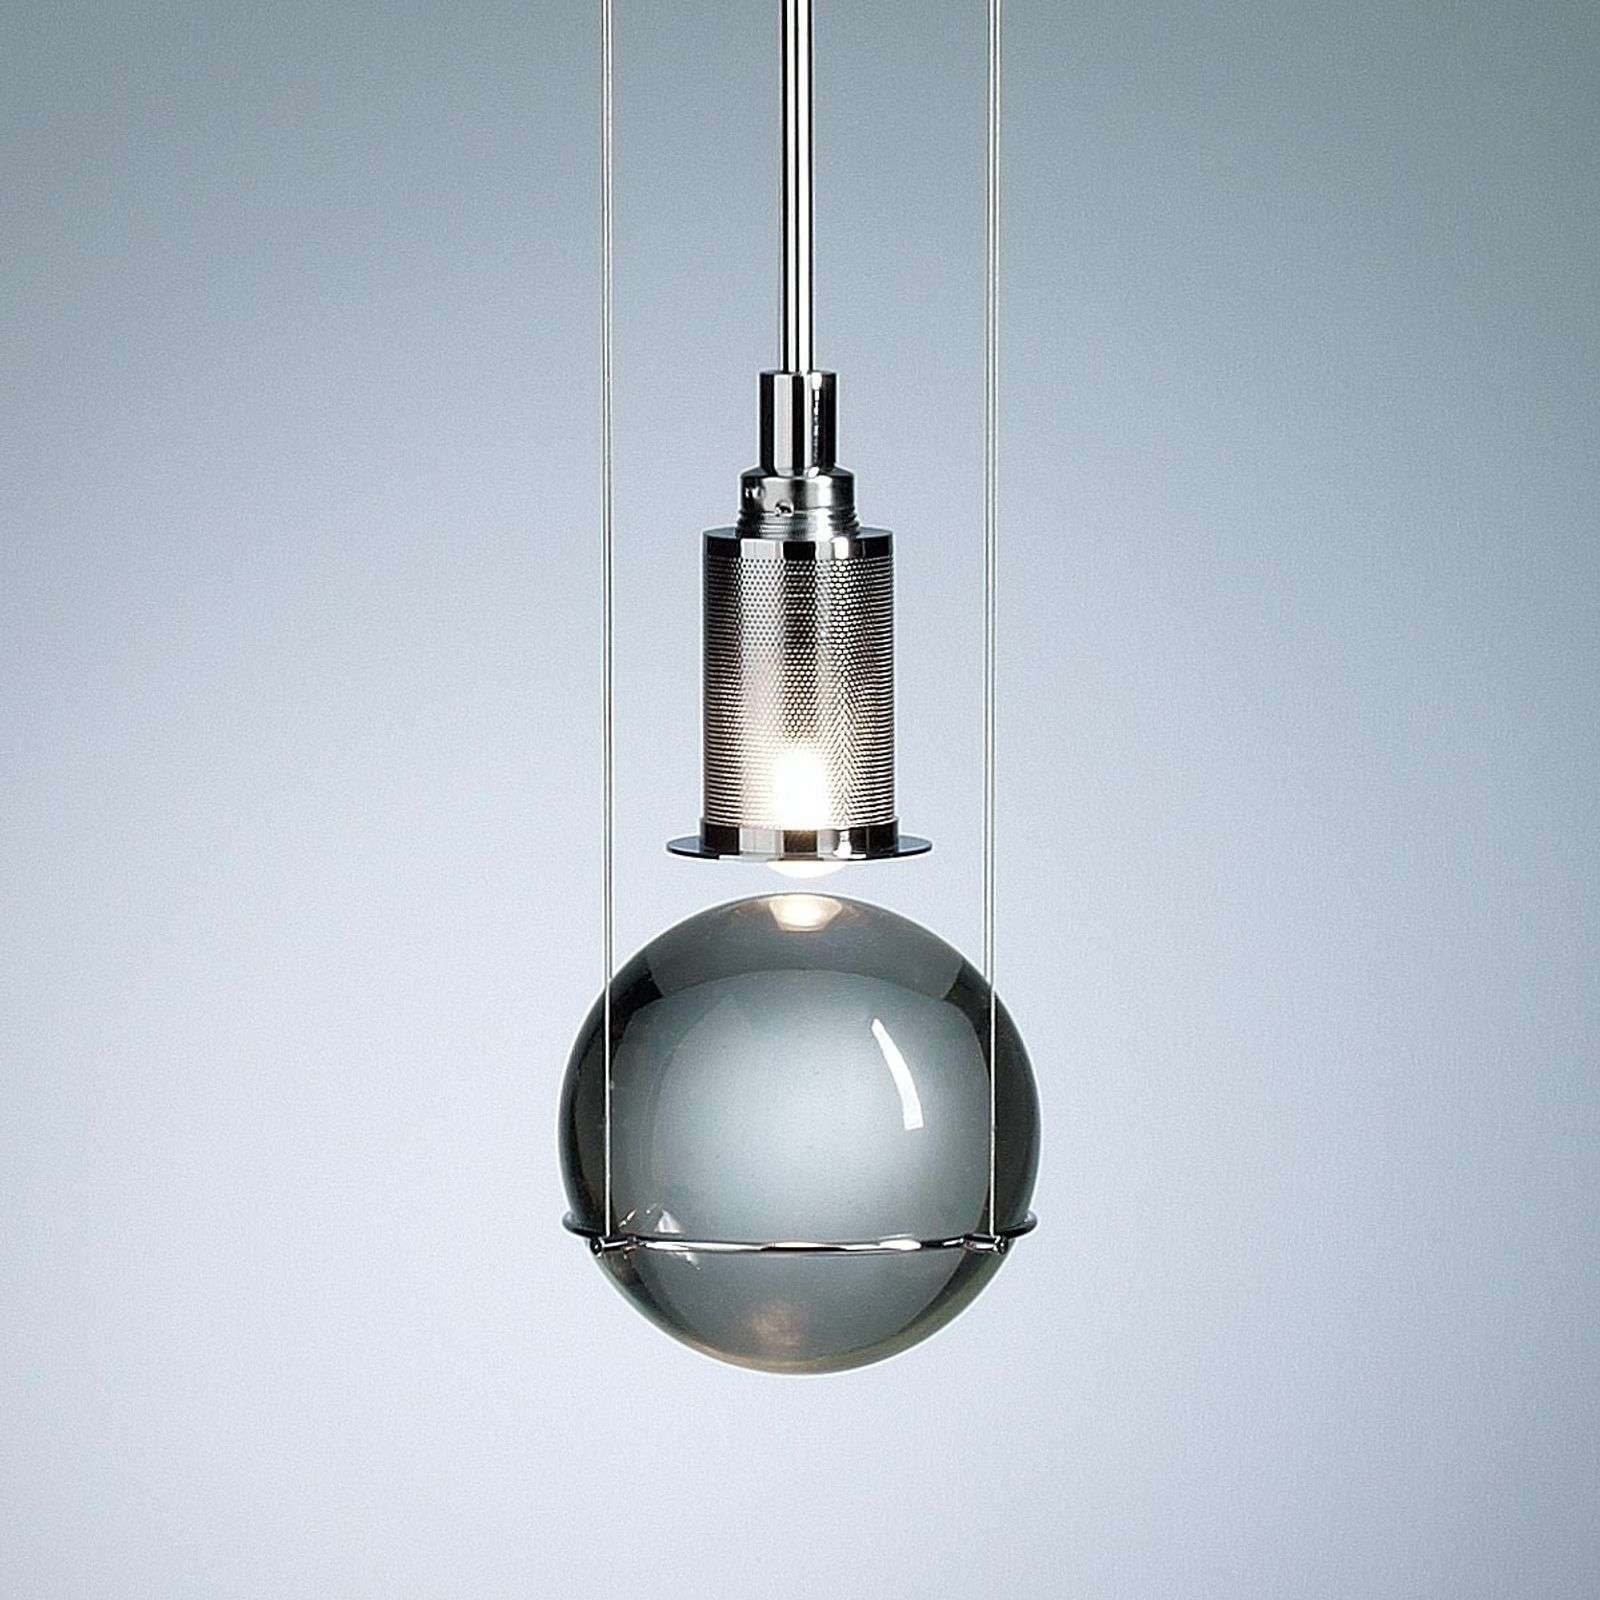 Design-hanglamp LE TRE STREGHE, messing